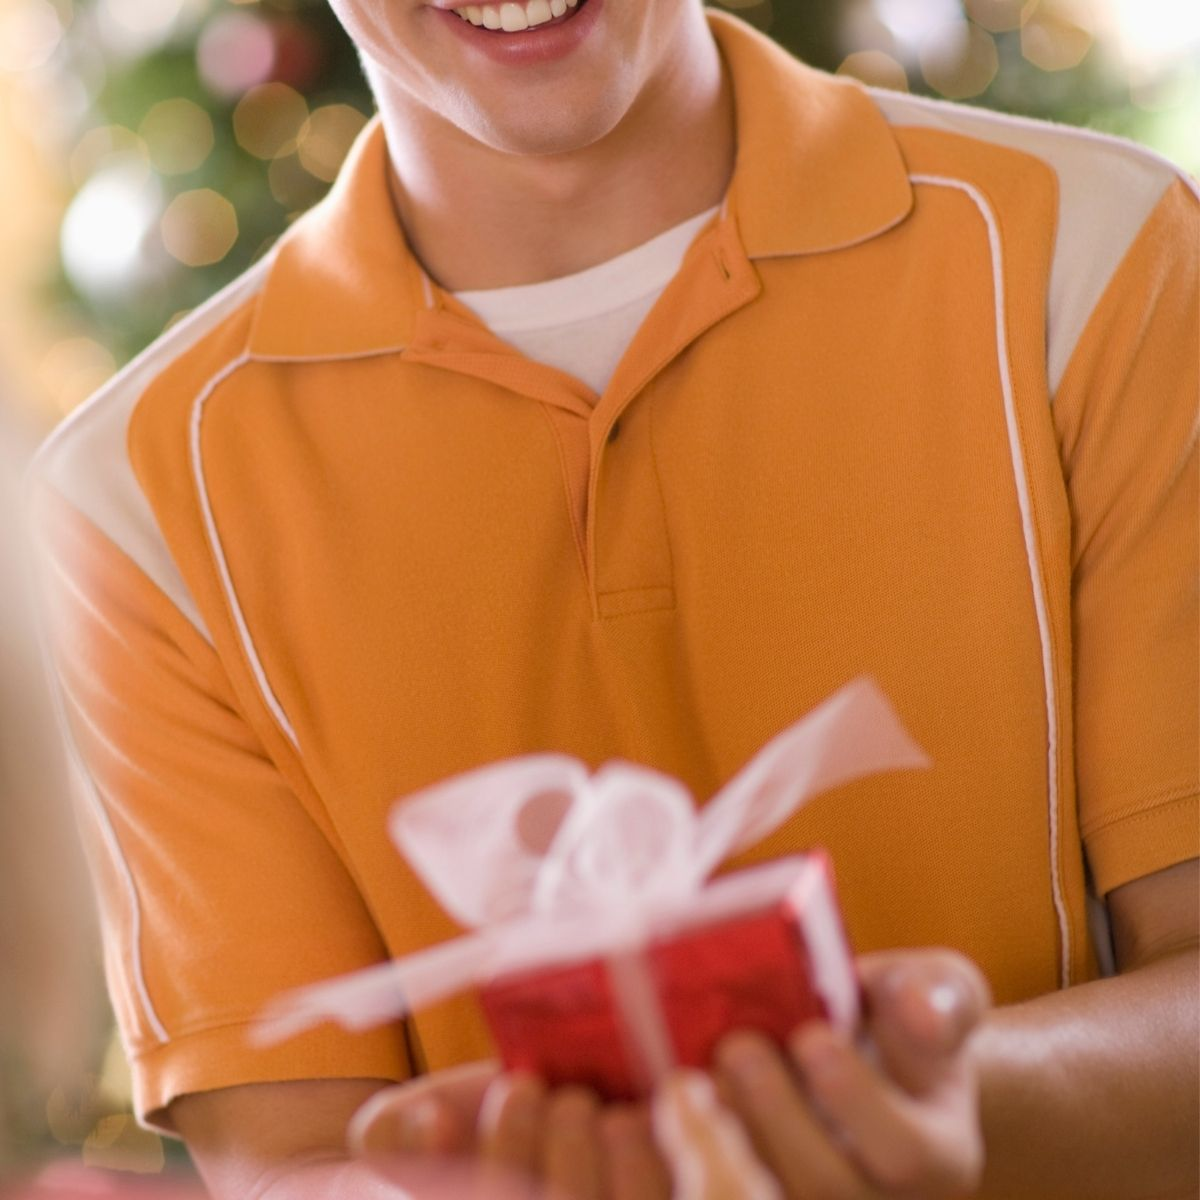 A teen boy holing a wrapped gift in his hands